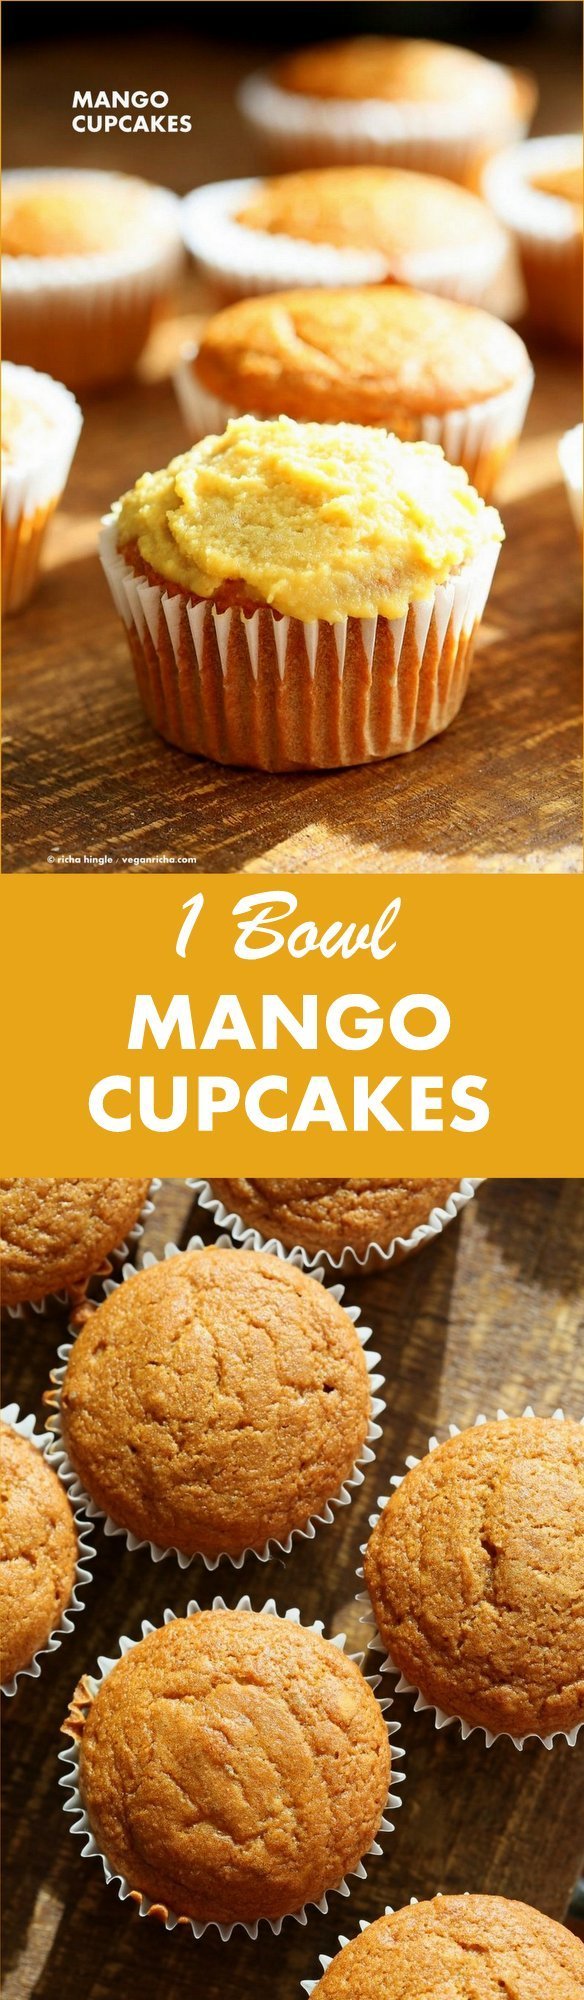 One Bowl Vegan Mango Cupcakes. Easy Mango Cupcake or Cake Recipe. Whisk up the dry ingredients. Add in mango puree and bake. Easy tropical cupcakes. Frost with frosting of choice. #Vegan #cake #mango #Recipe | VeganRicha.com